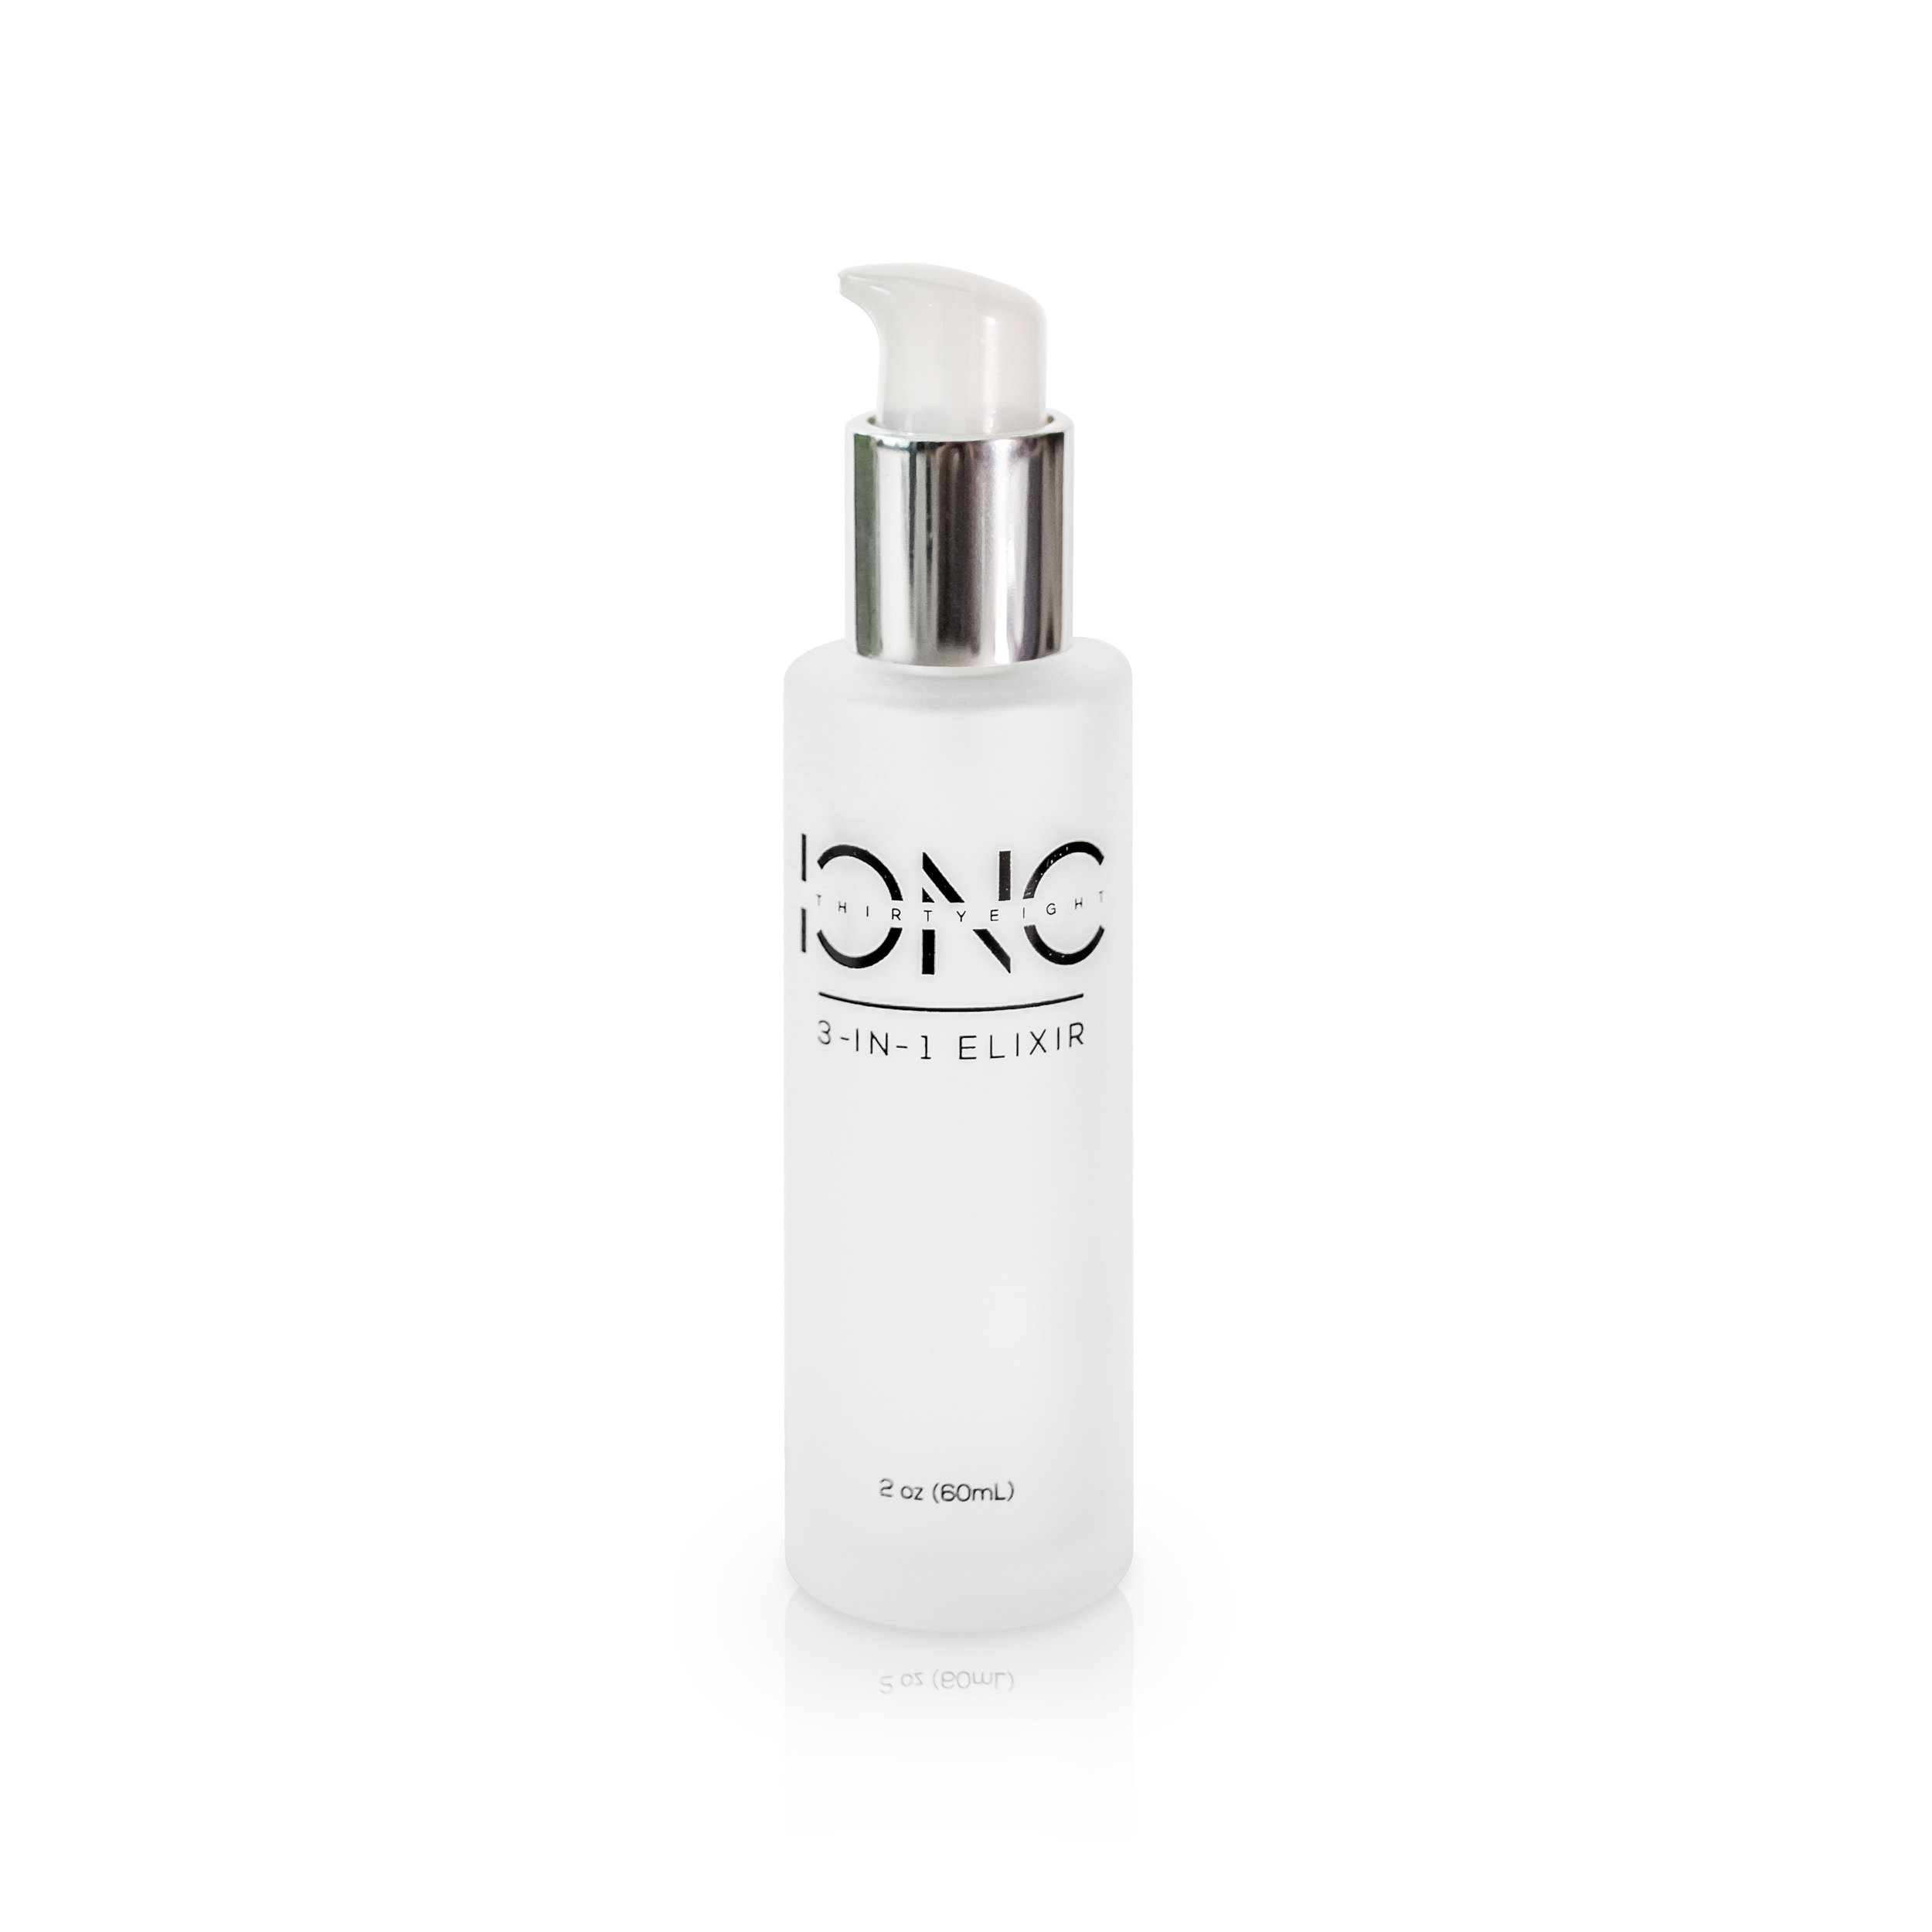 3. ICNC 38 3-in-1 Elixir - If he has a beard, he NEEDS this. The ICNC 38 3-in-1 Elixir is one of the best options you can make when it comes to purchasing beard care products. A beard is only as good as the skin it grows from and this all natural vegan 3-in-1 system establishes the foundation of healthy skin while promoting hair growth by cleansing, hydrating & moisturizing. It can be used as a beard oil or skin cleanser and moisturizer. Sold exclusively by Black Men With Beards!